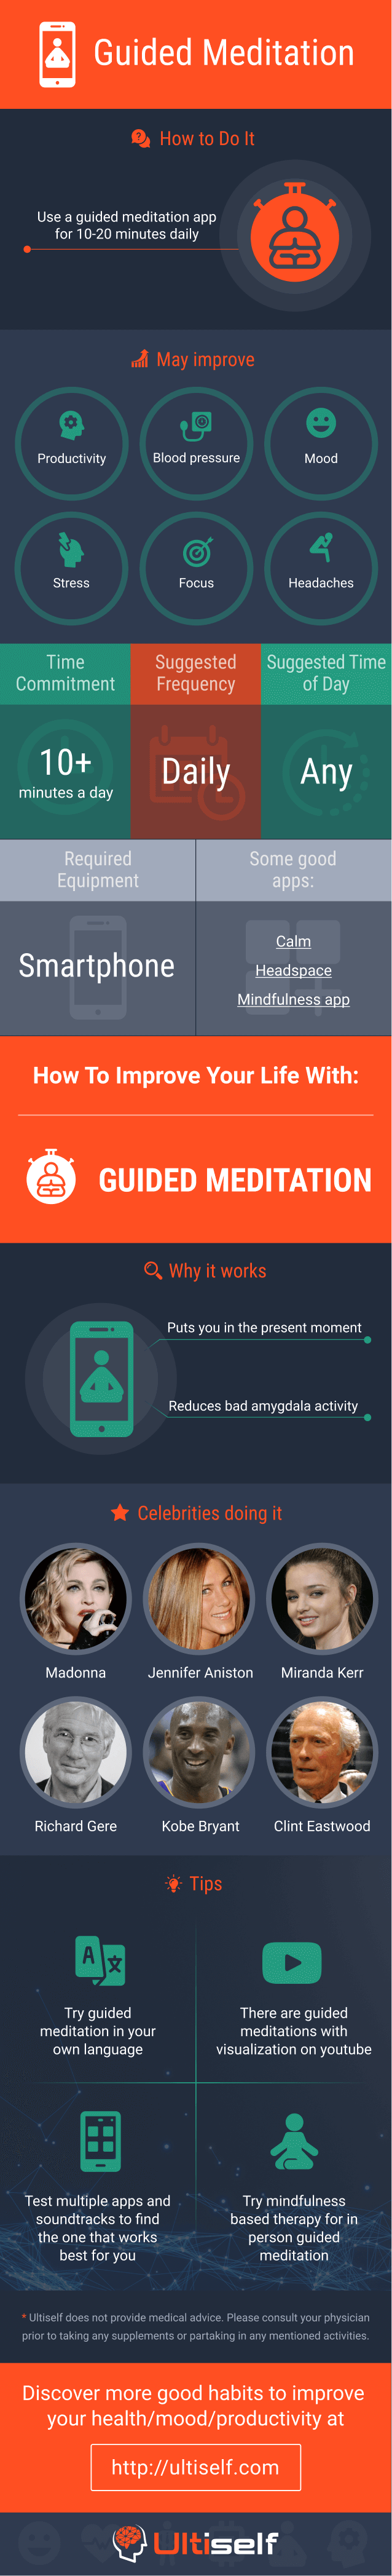 Guided meditation infographic